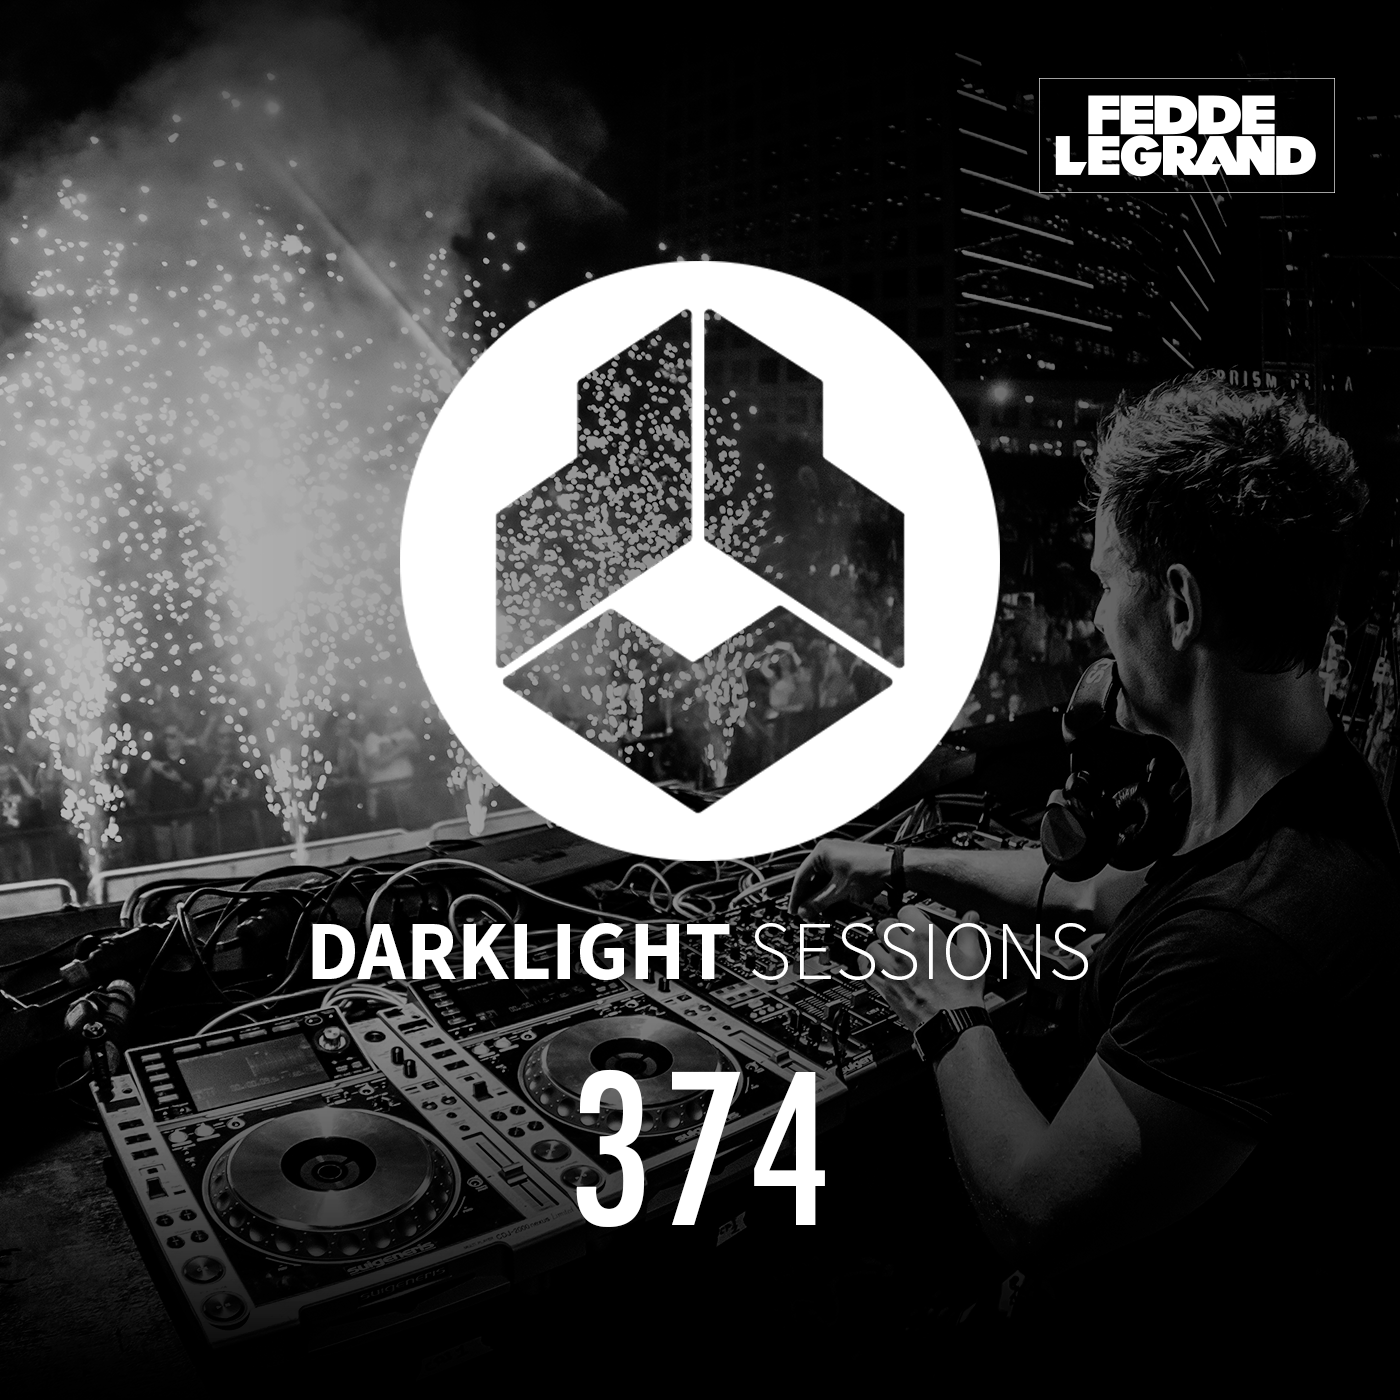 Darklight Sessions 374